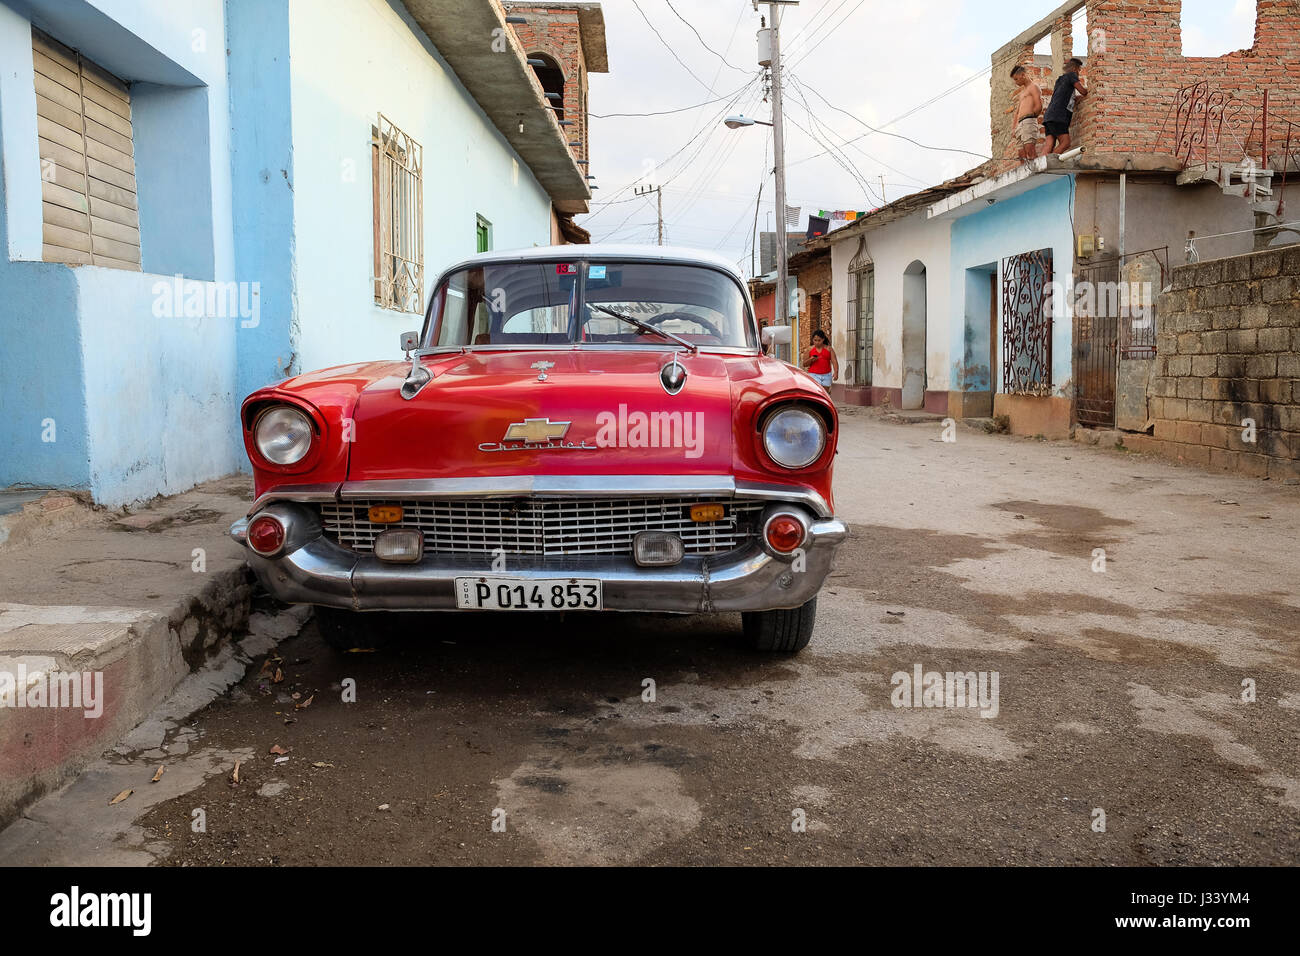 TRINIDAD, CUBA: APRIL 15 2017: American classic car in the street ...